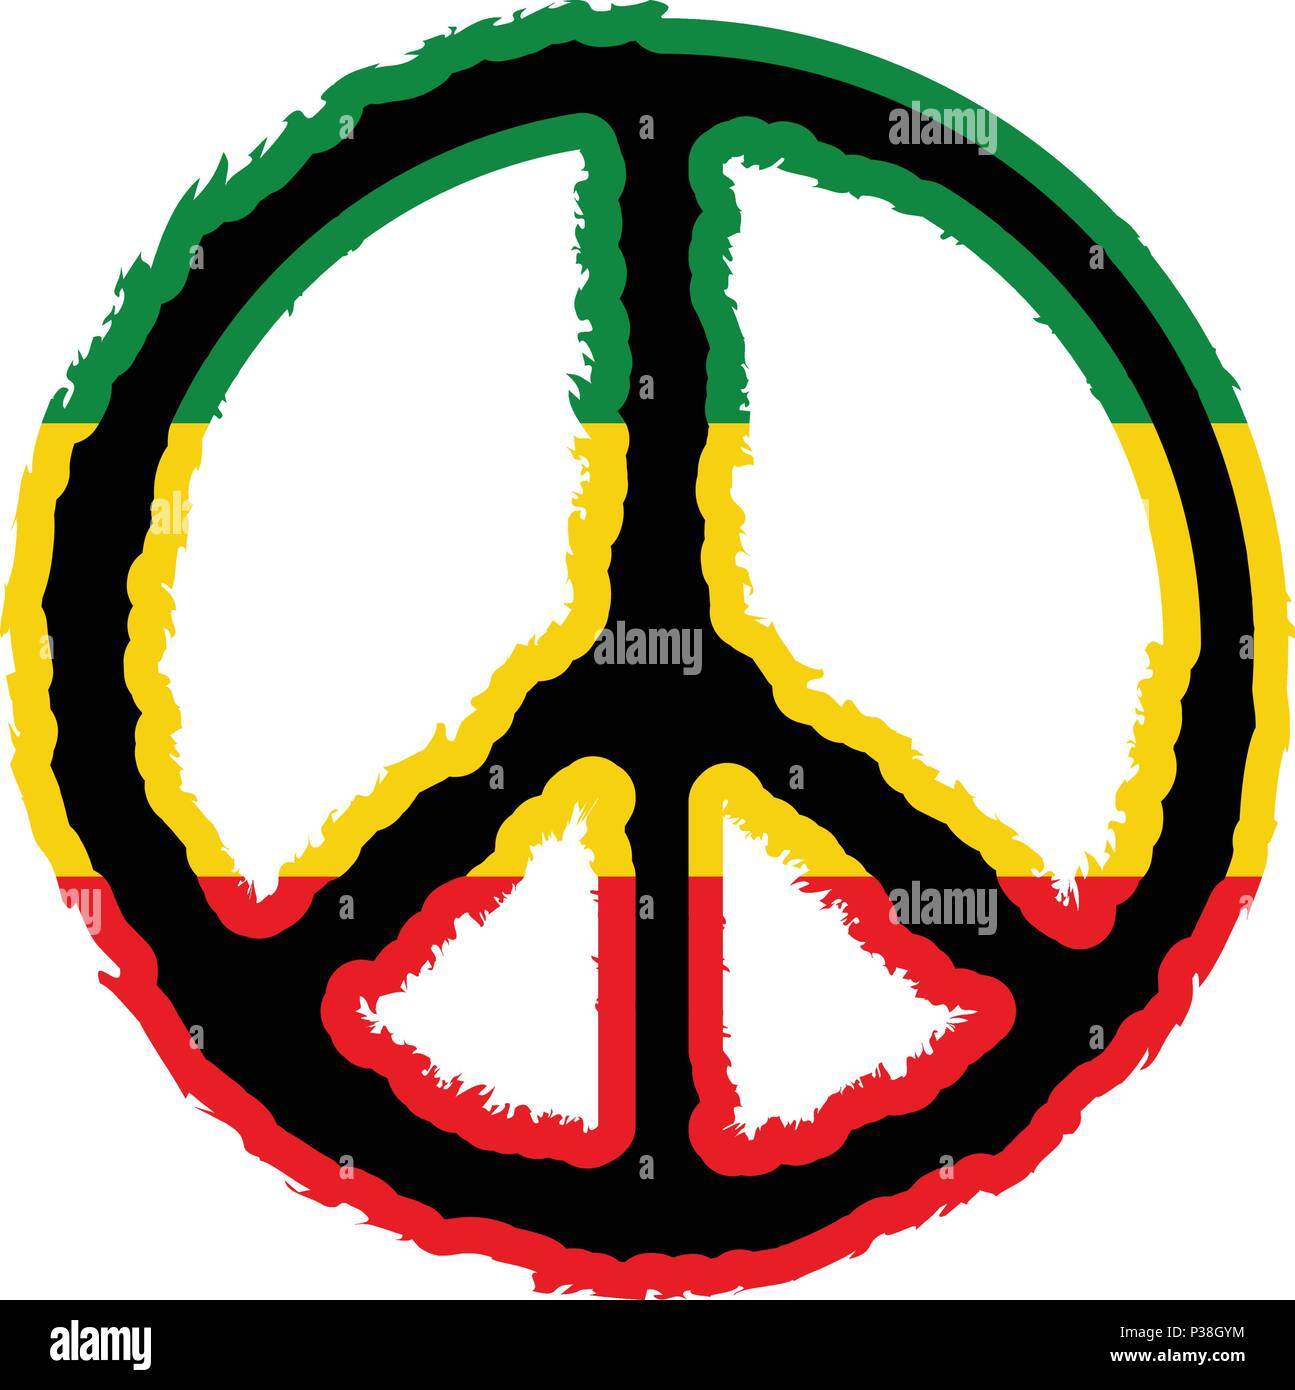 5ab36ded6 Isolated colored peace symbol Stock Vector Art & Illustration ...